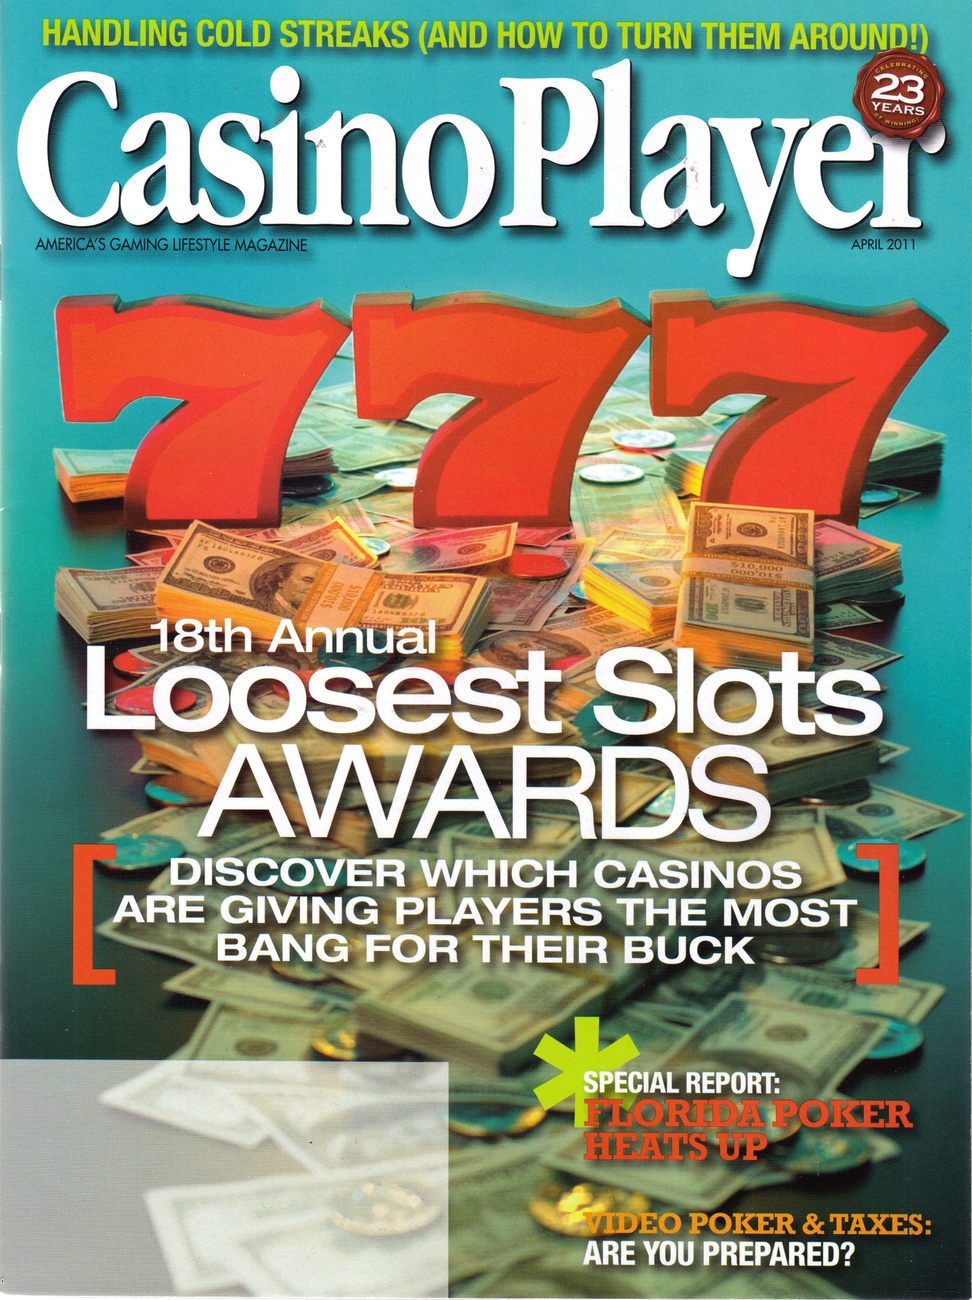 Casino player loosest slots